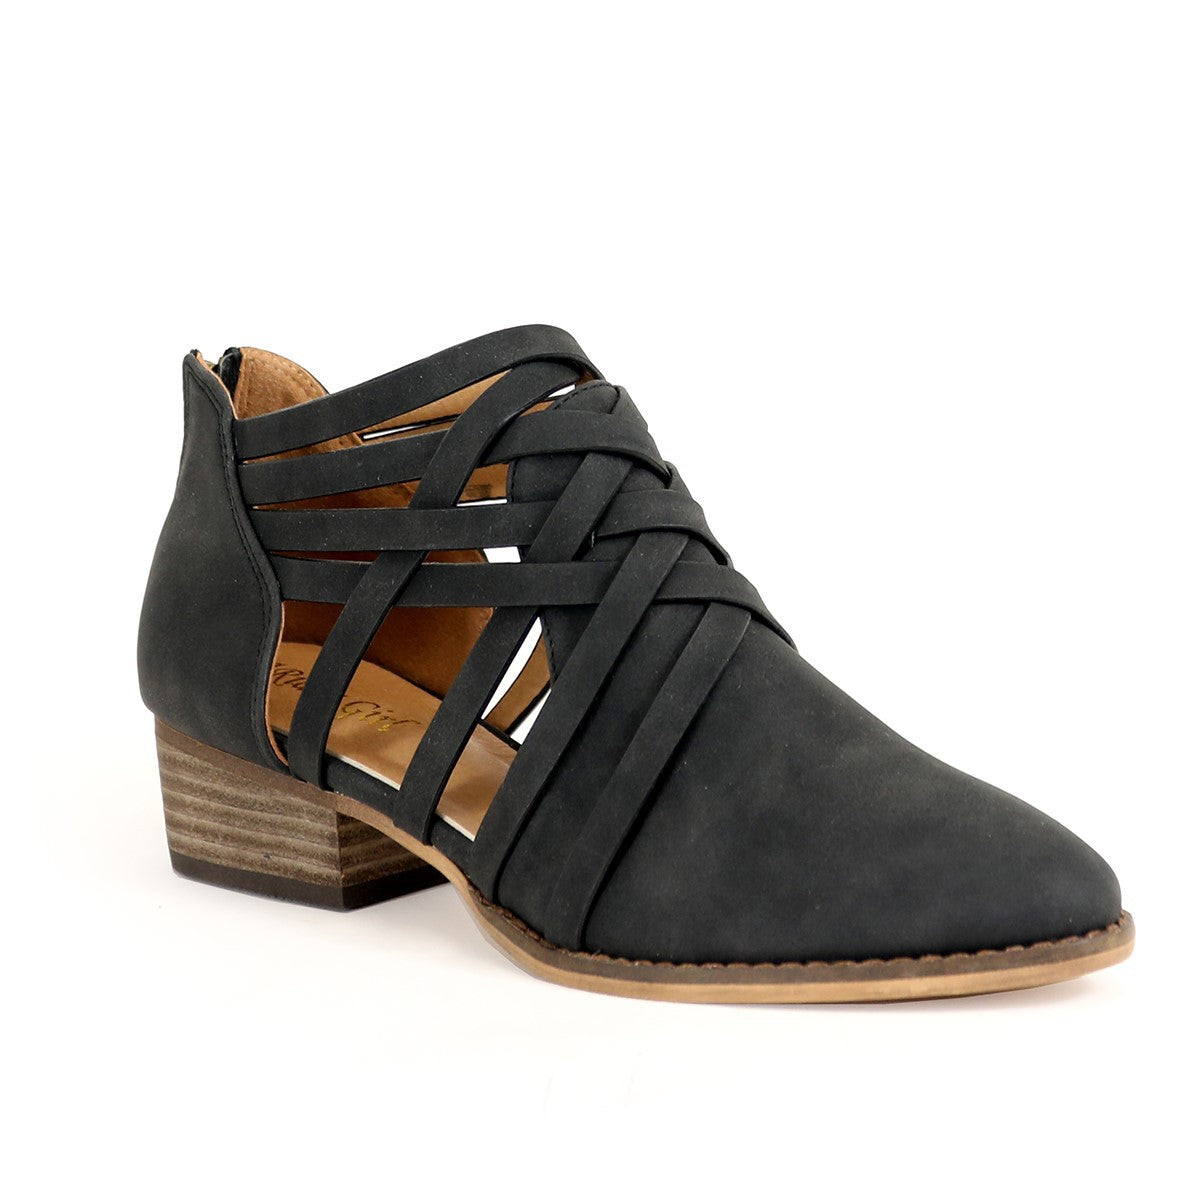 WOMENS STRAPPY OPEN SHANK ANKLE BOOTIES